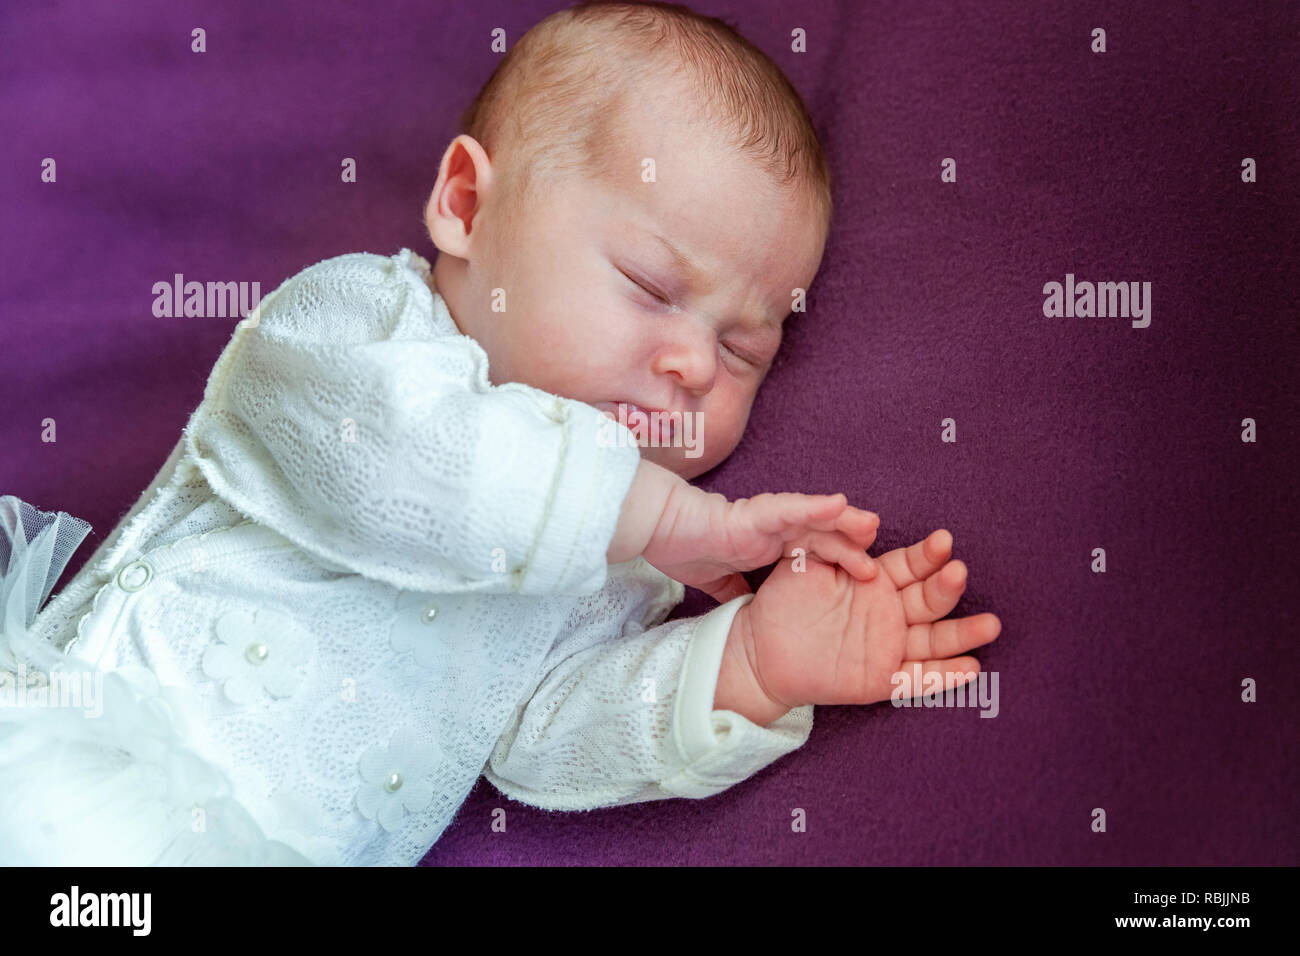 Soft Portrait Of Peaceful Sweet Newborn Infant Baby Lying On Bed While Sleeping In Purple Blanket Background Sweet Dream Good Night Maternity Famil Stock Photo Alamy